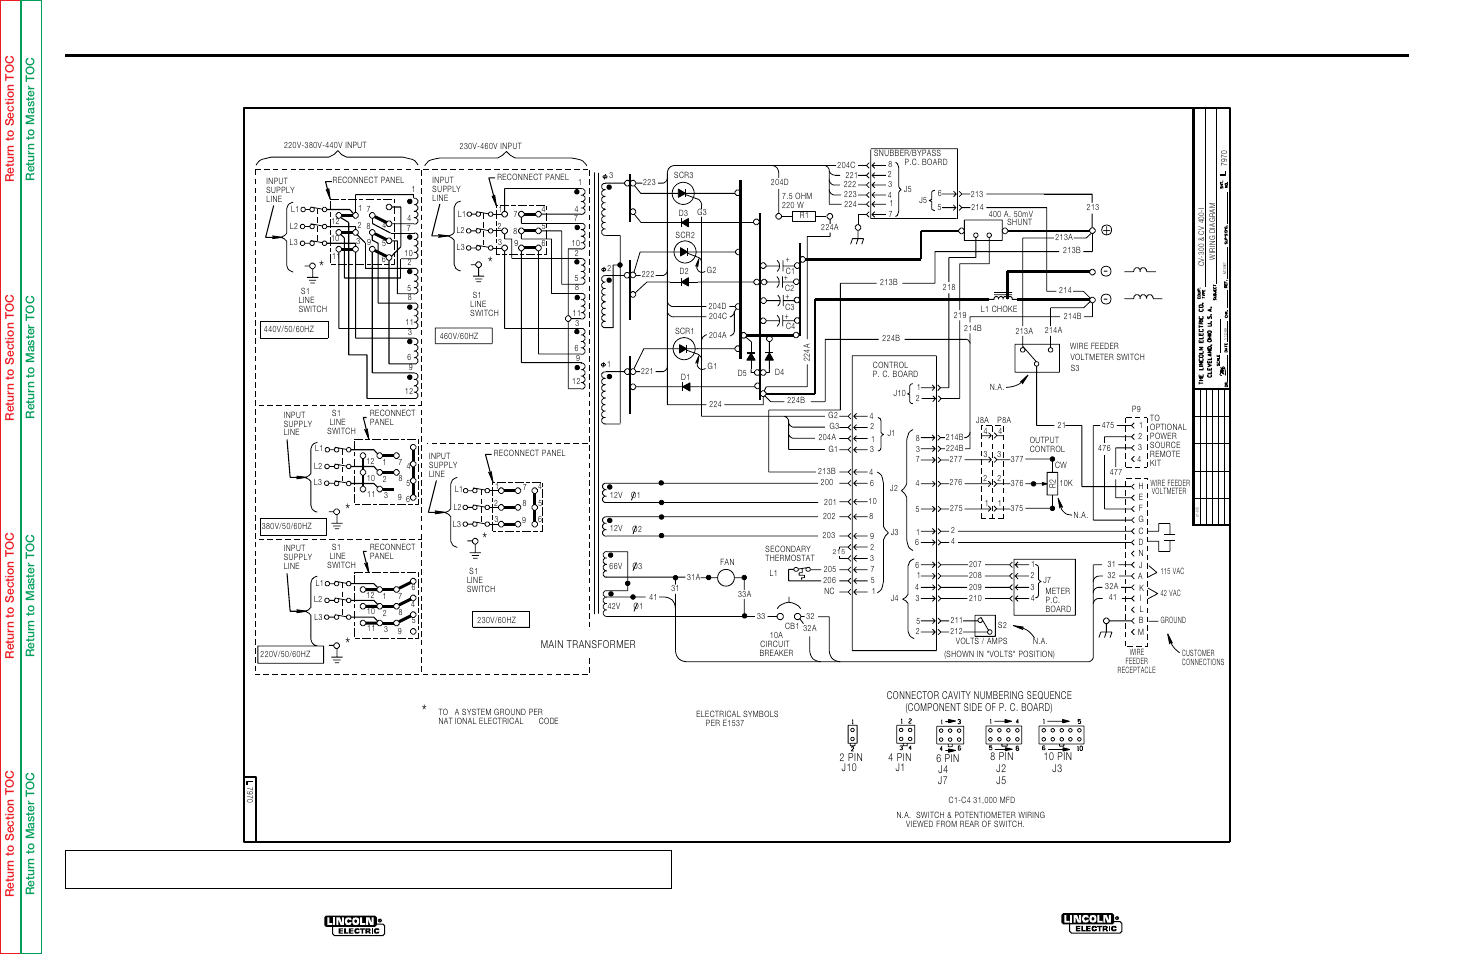 Electrical    diagrams        Wiring       diagram    for code 9456      Lincoln    Electric IDEALARC CV300 User Manual